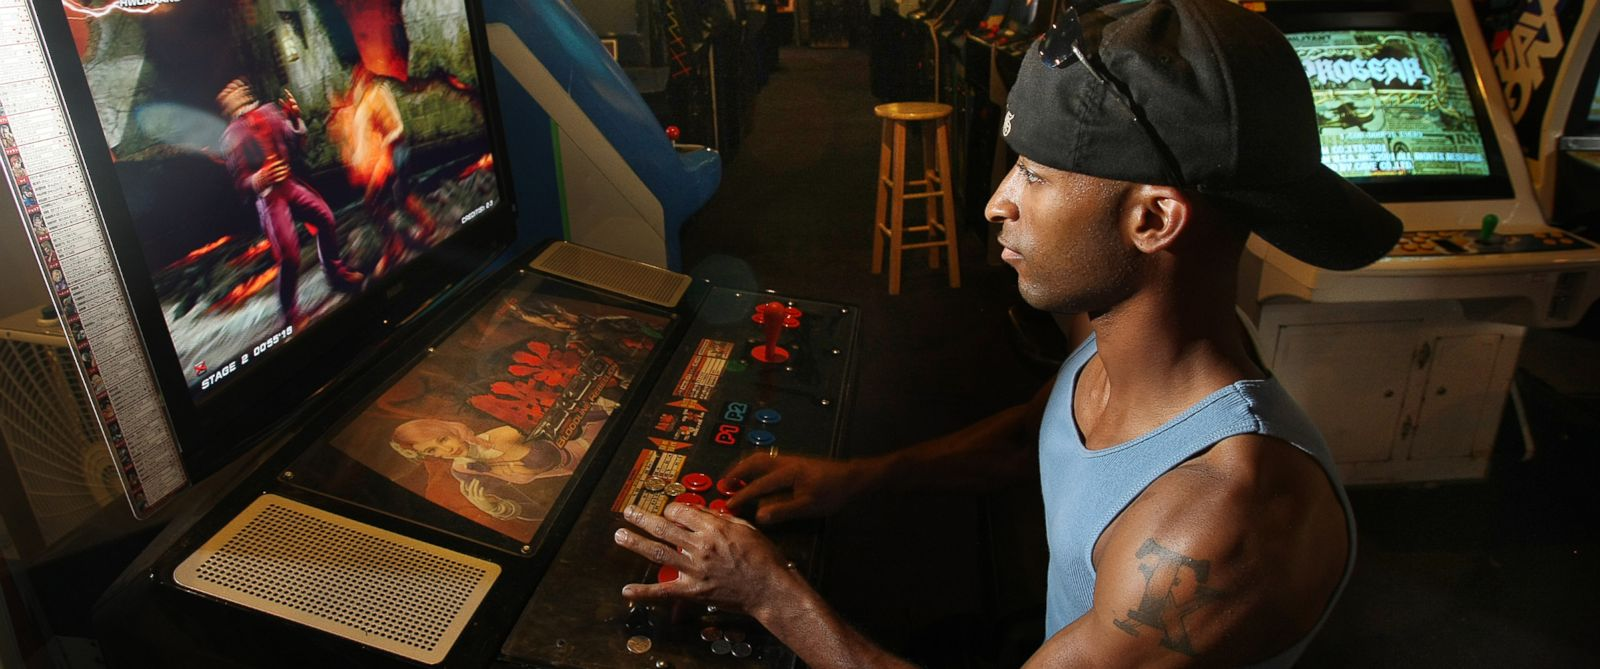 """PHOTO: In this Aug. 26, 2009 picture, Michael Robinson plays """"Tekken Six Bloodline Rebellion"""" a popular game at Game Galaxy in Hickory Hollow mall in Nashville, Tenn."""